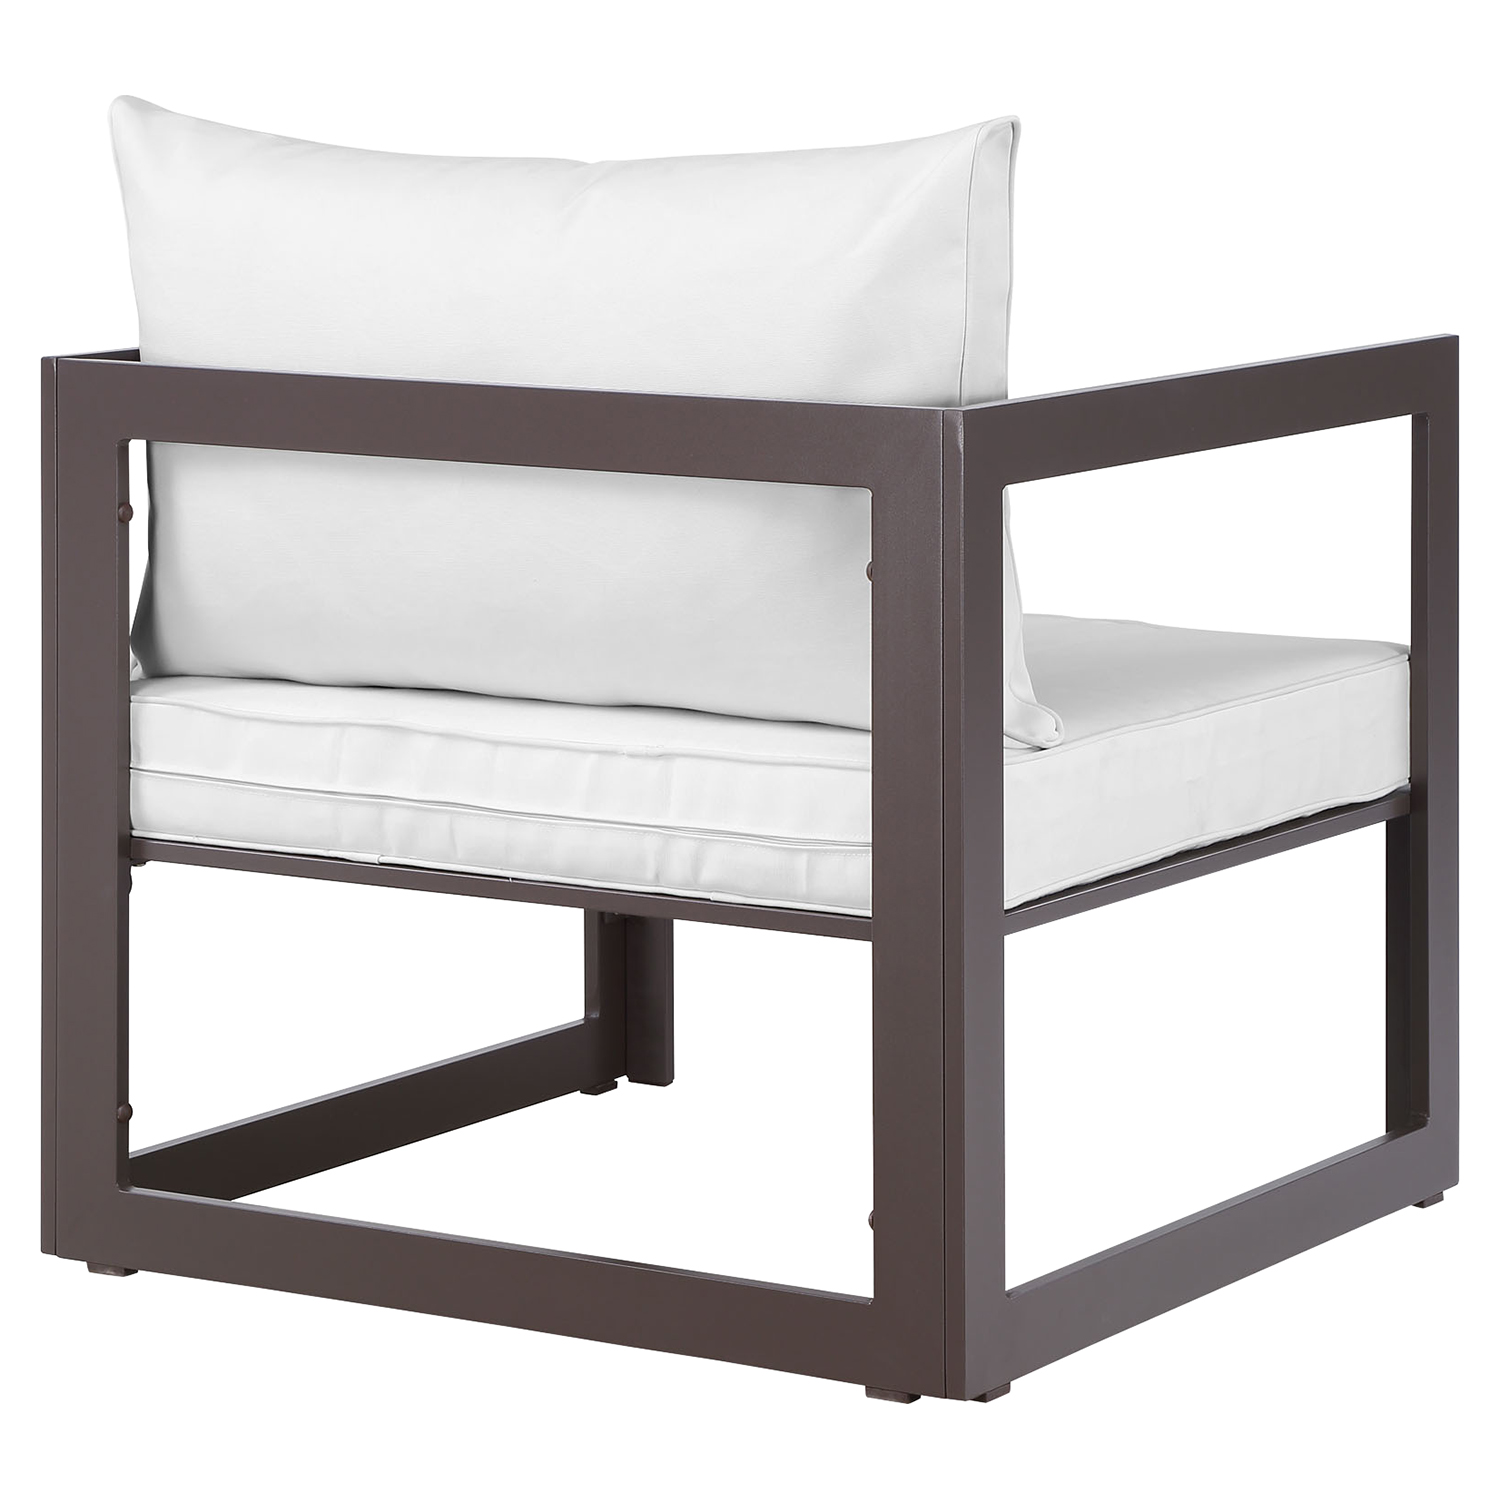 Fortuna Outdoor Patio Armchair - Brown Frame, White Cushion - EEI-1517-BRN-WHI